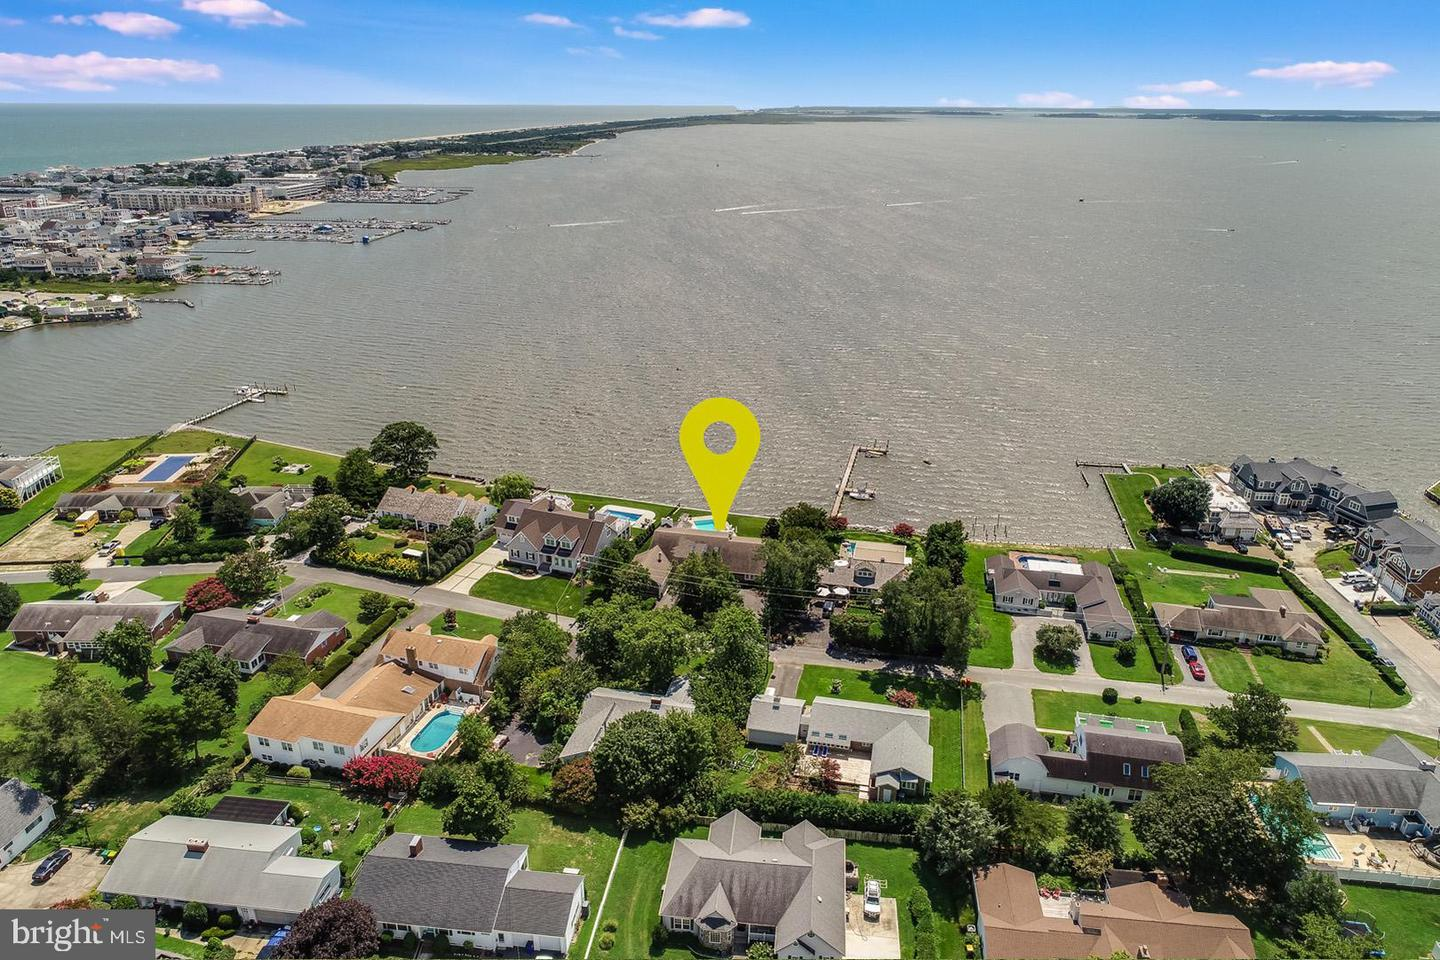 DESU146280-301986131069-2019-10-25-13-18-17 316 Salisbury St | Rehoboth Beach, DE Real Estate For Sale | MLS# Desu146280  - Rehoboth Beach Real Estate - Bryce Lingo and Shaun Tull REALTORS, Rehoboth Beach, Delaware